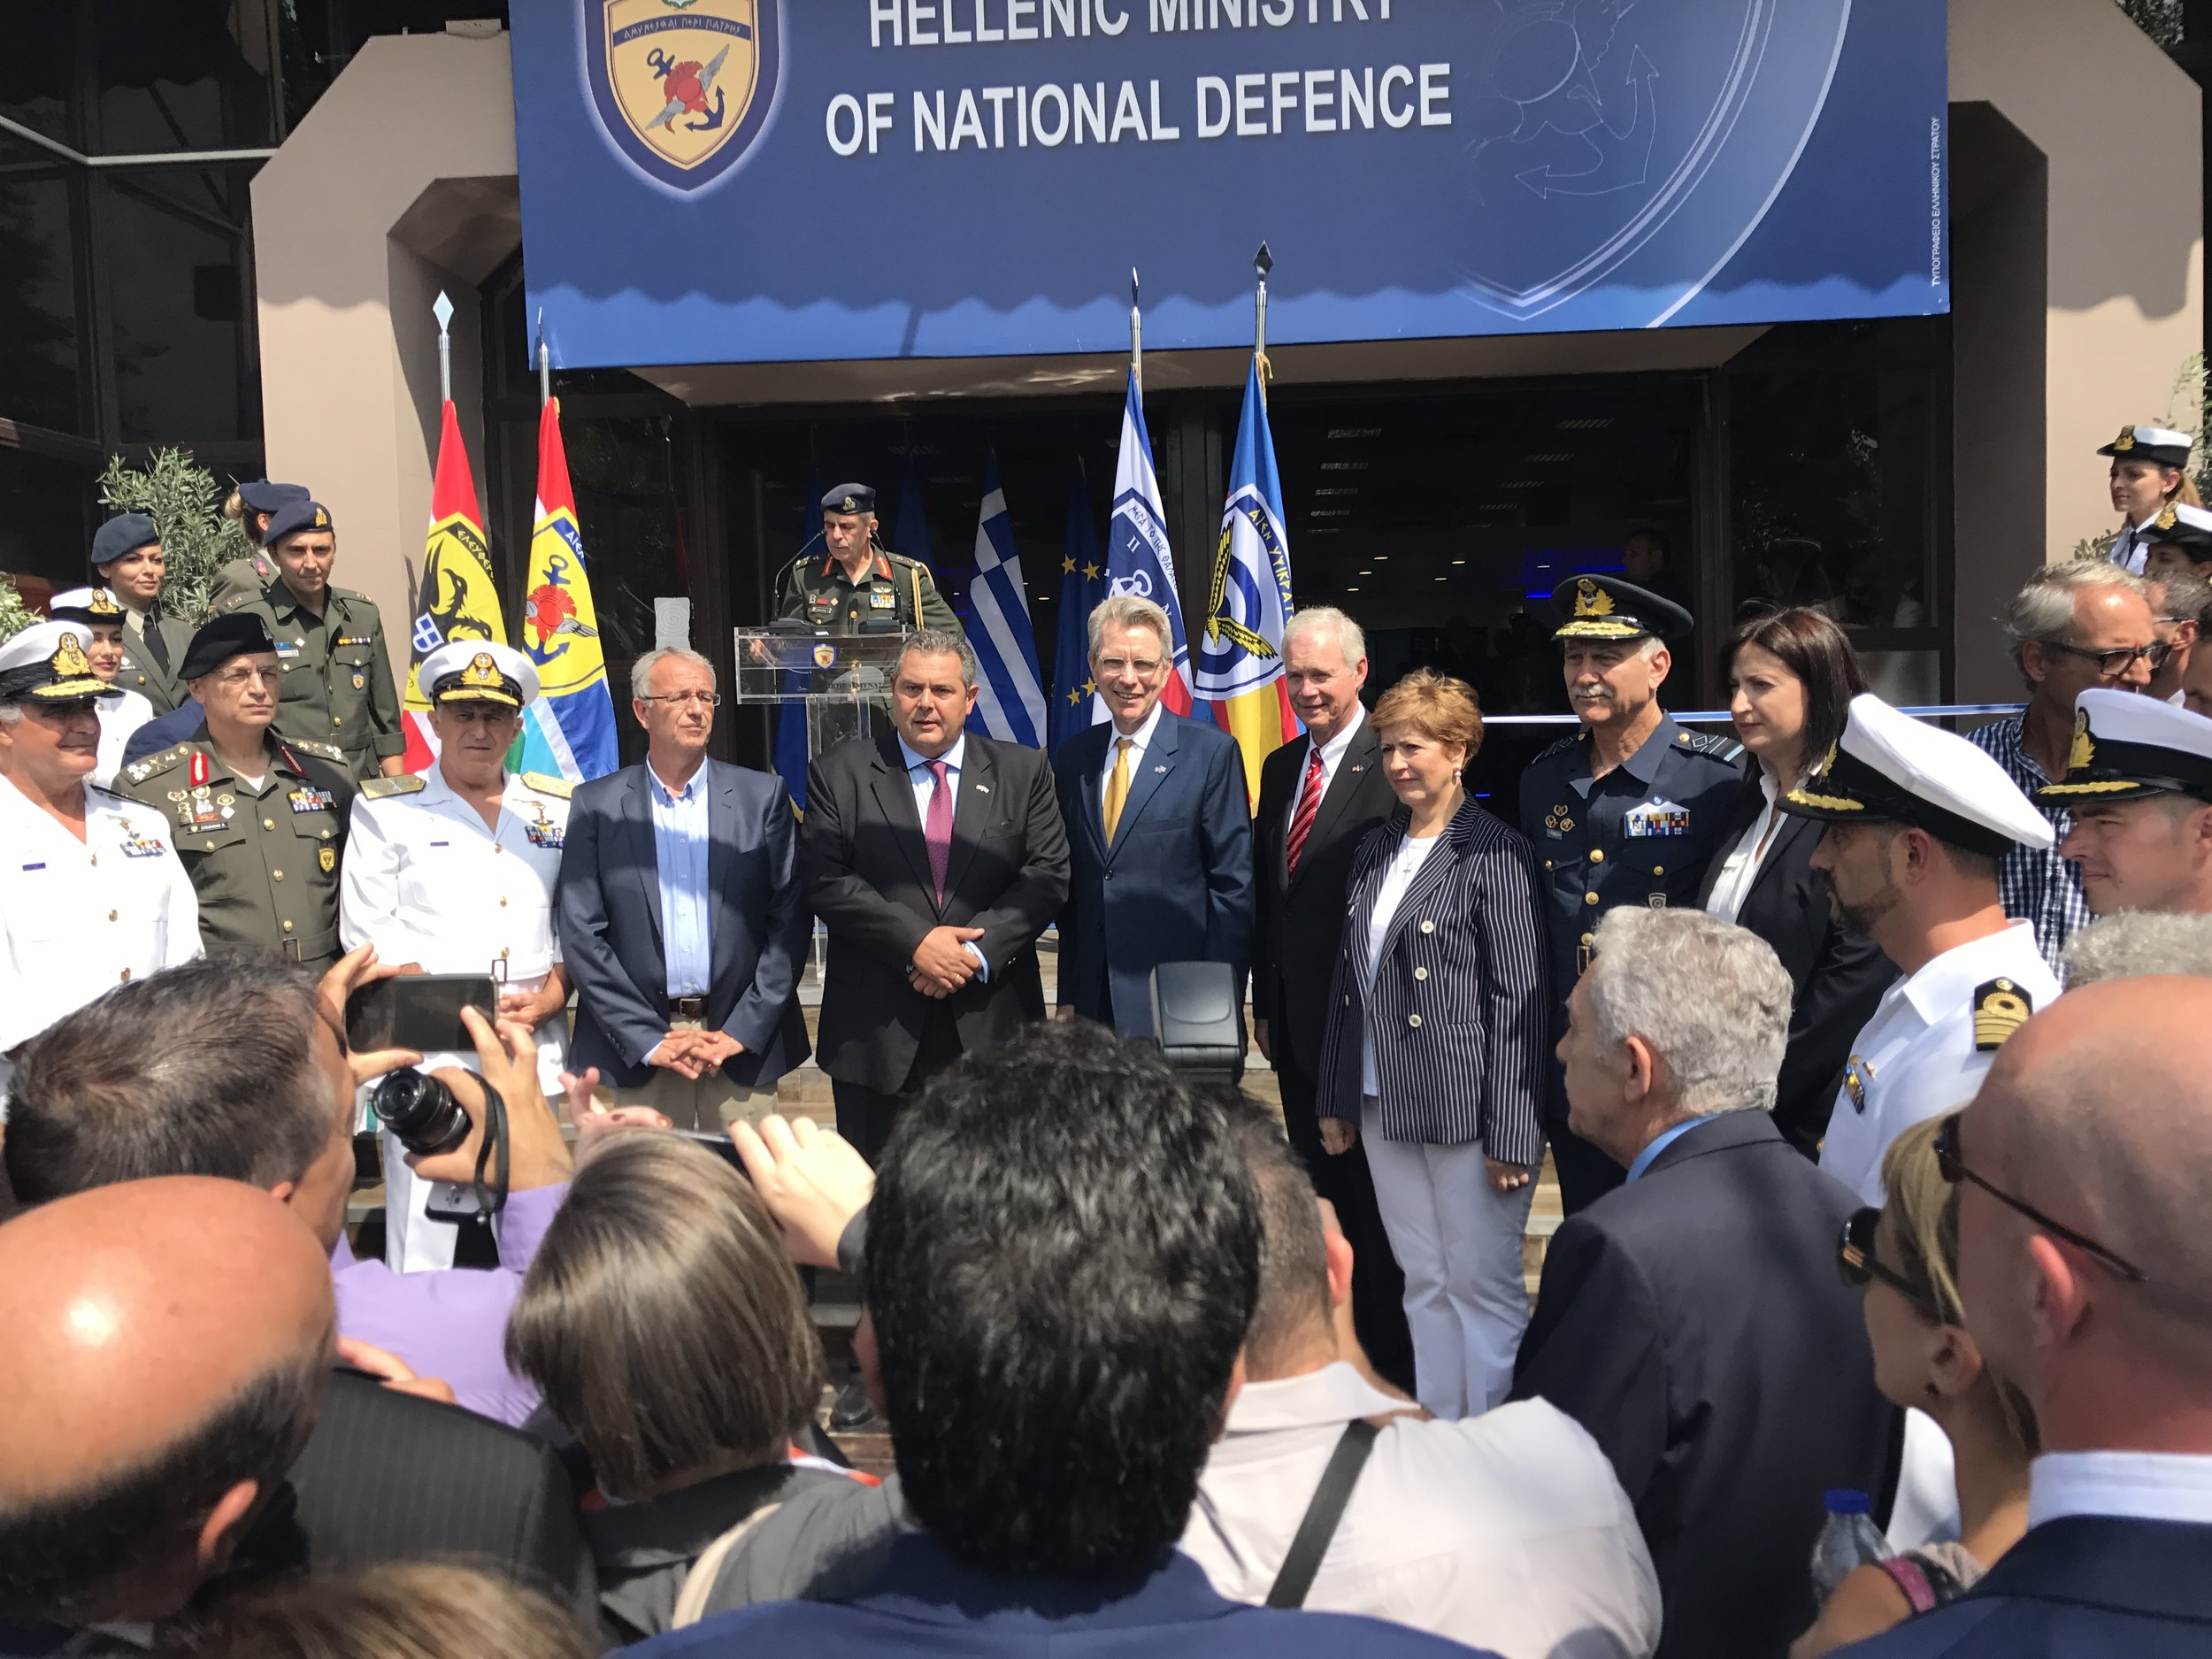 Greek Minister of Defense Panos Kammenos and US Ambassador to Greece Geoffrey Pyatt (center) surrounded by the Chiefs of the Hellenic Armed Forces at the inauguration of the Hellenic Armed Forces pavilion.